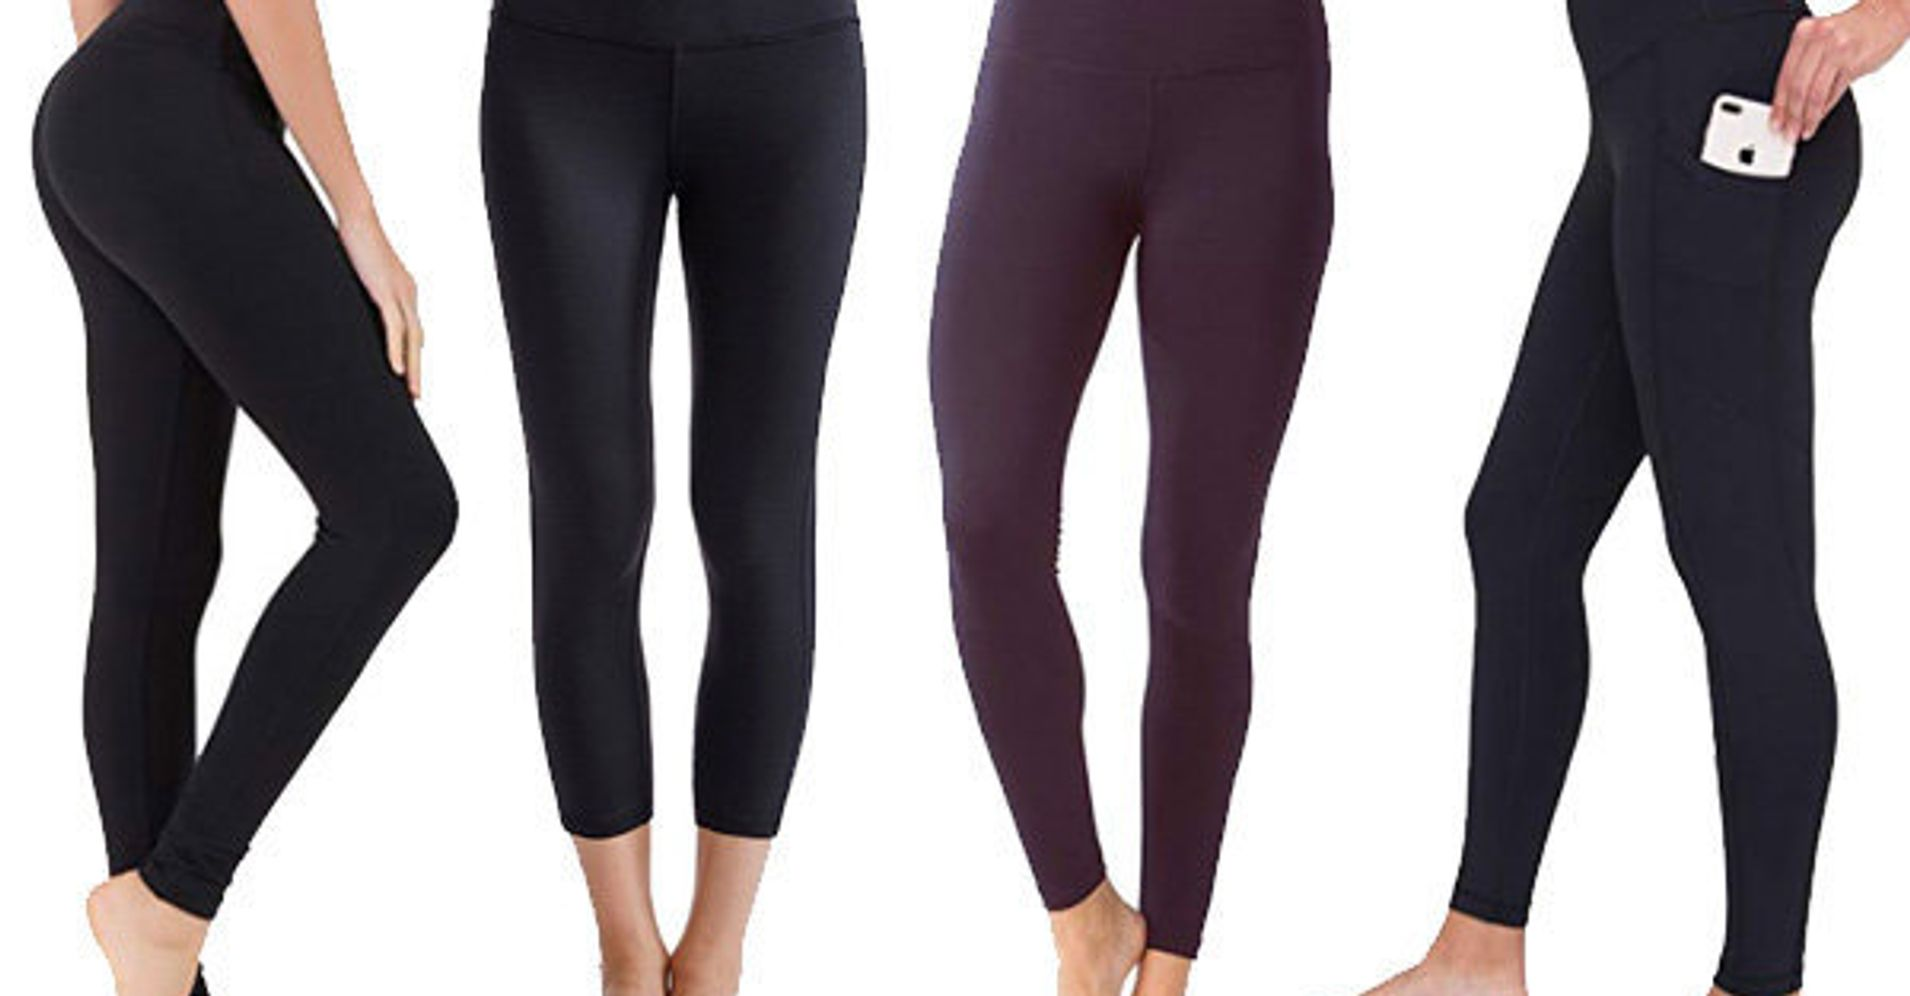 ff737d530742d The Most Flattering Yoga Pants On Amazon, According To Reviewers | HuffPost  Life